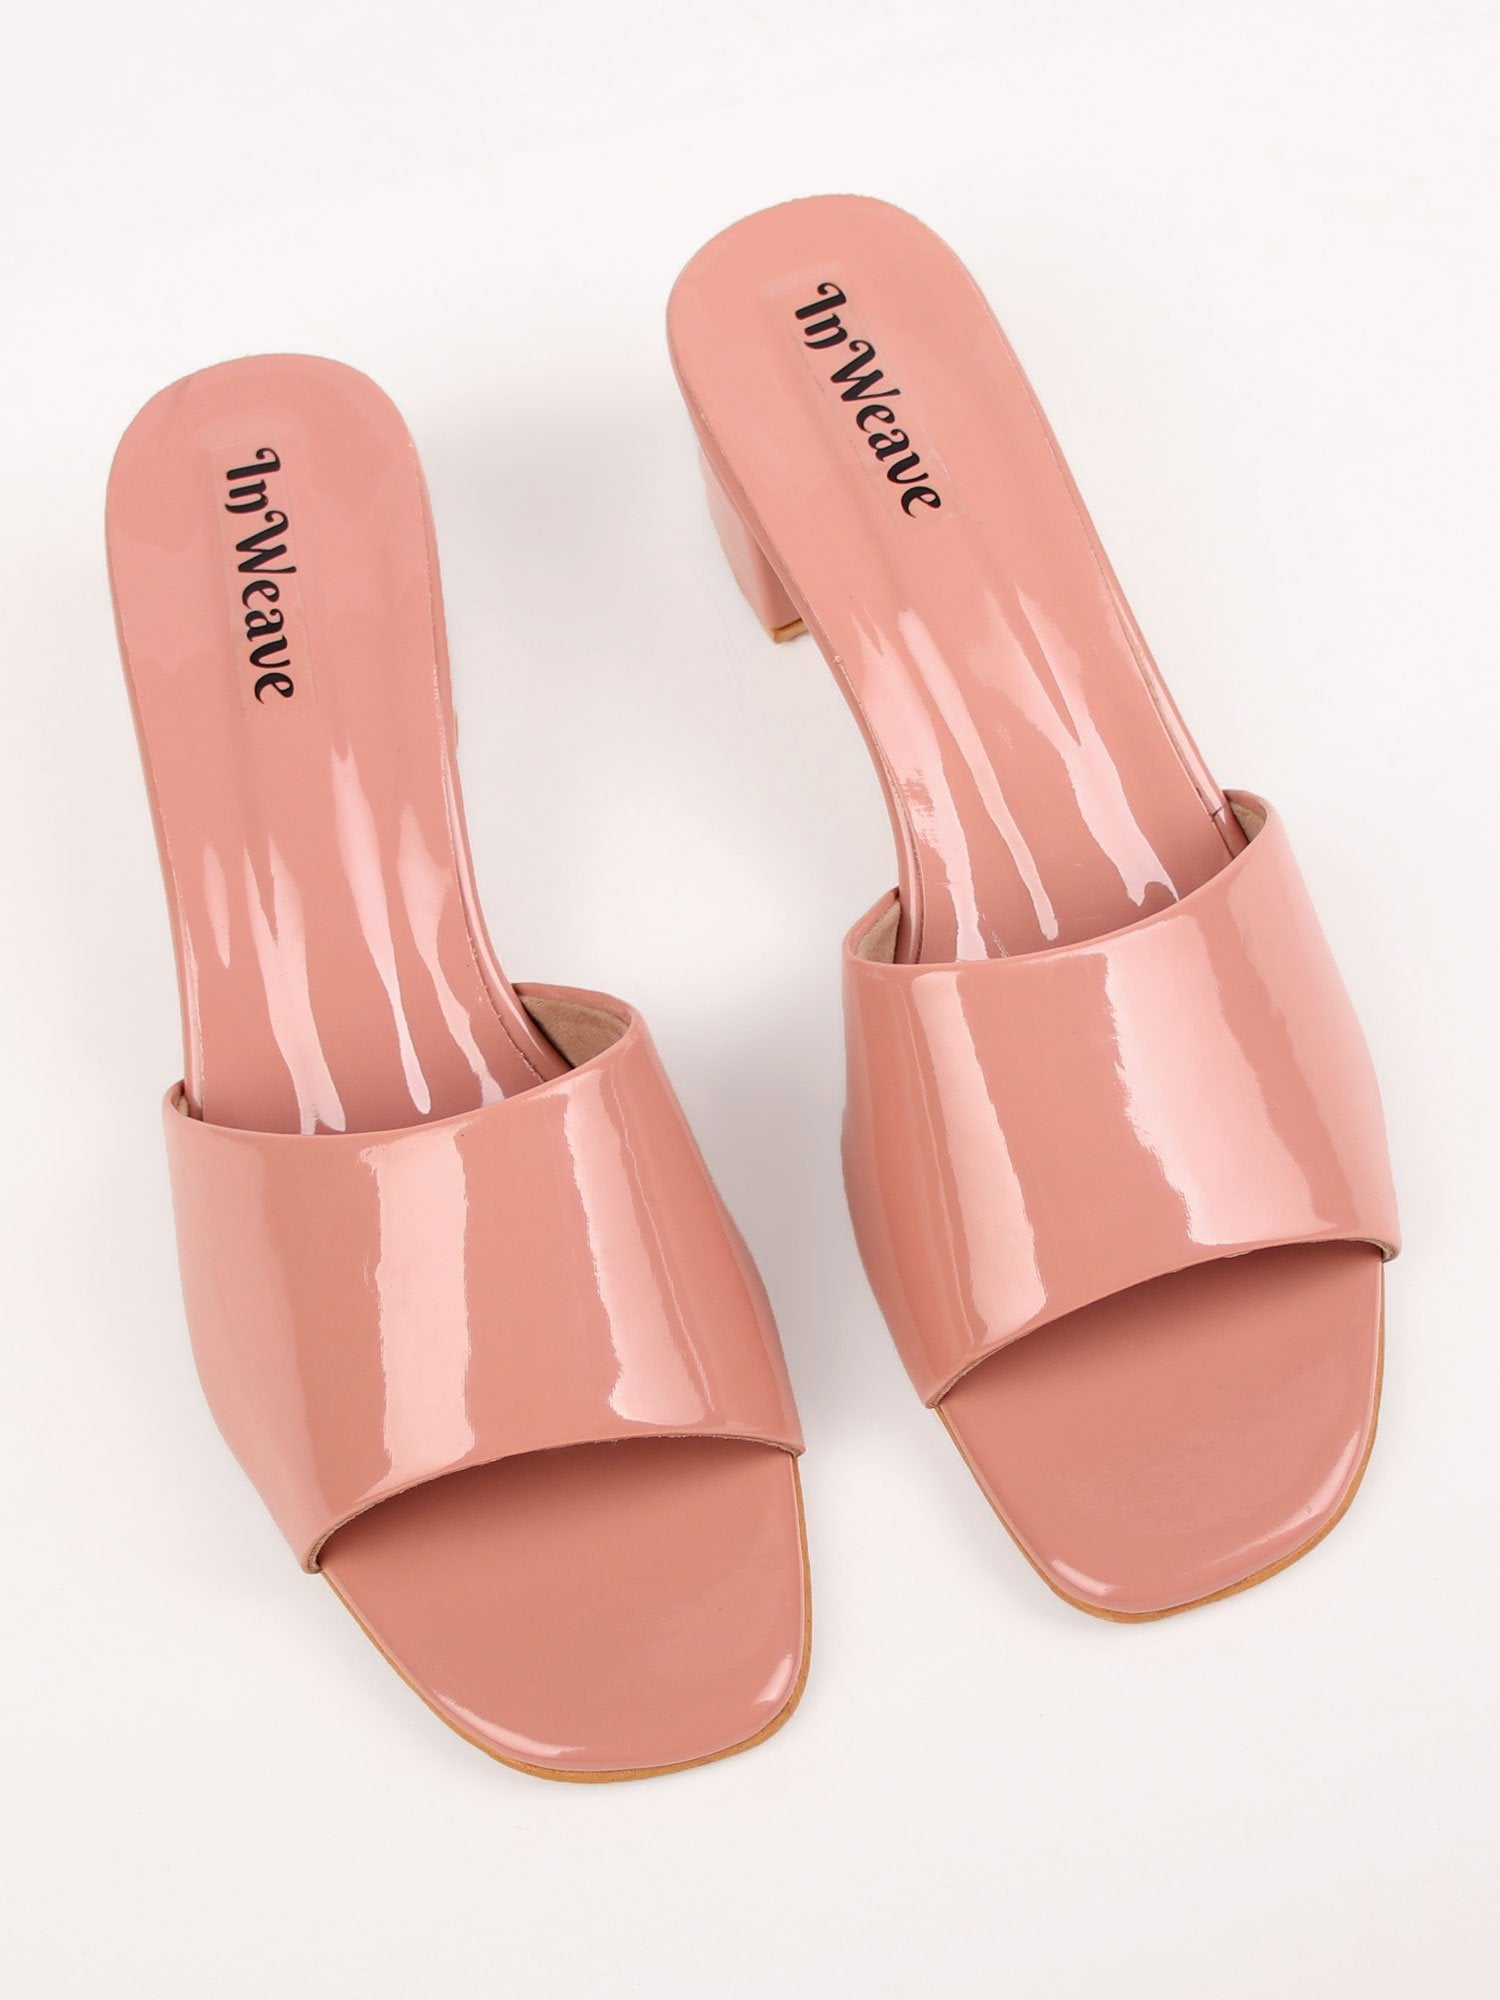 METROPOLIS BLOCK HEELS IN BLUSH PINK